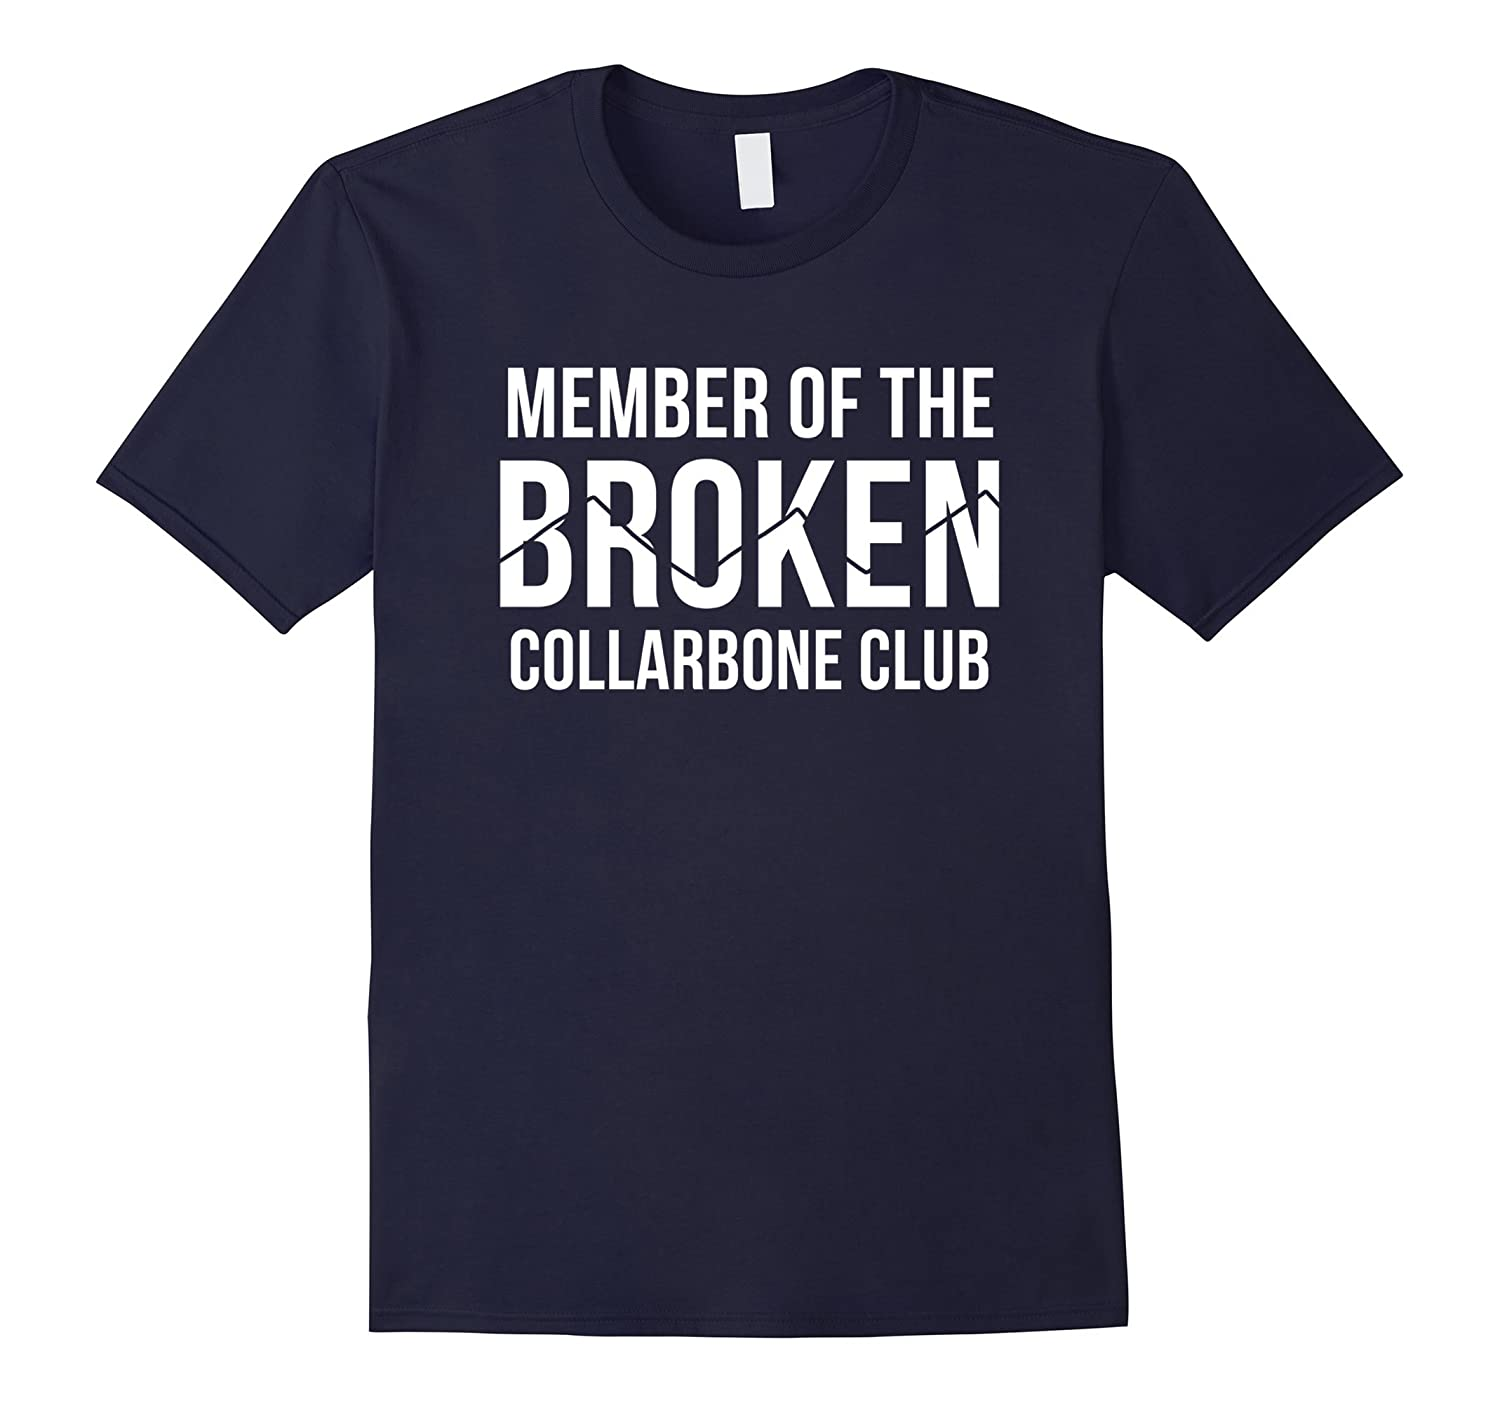 Member of the Broken Collarbone Club Funny T-Shirt-BN